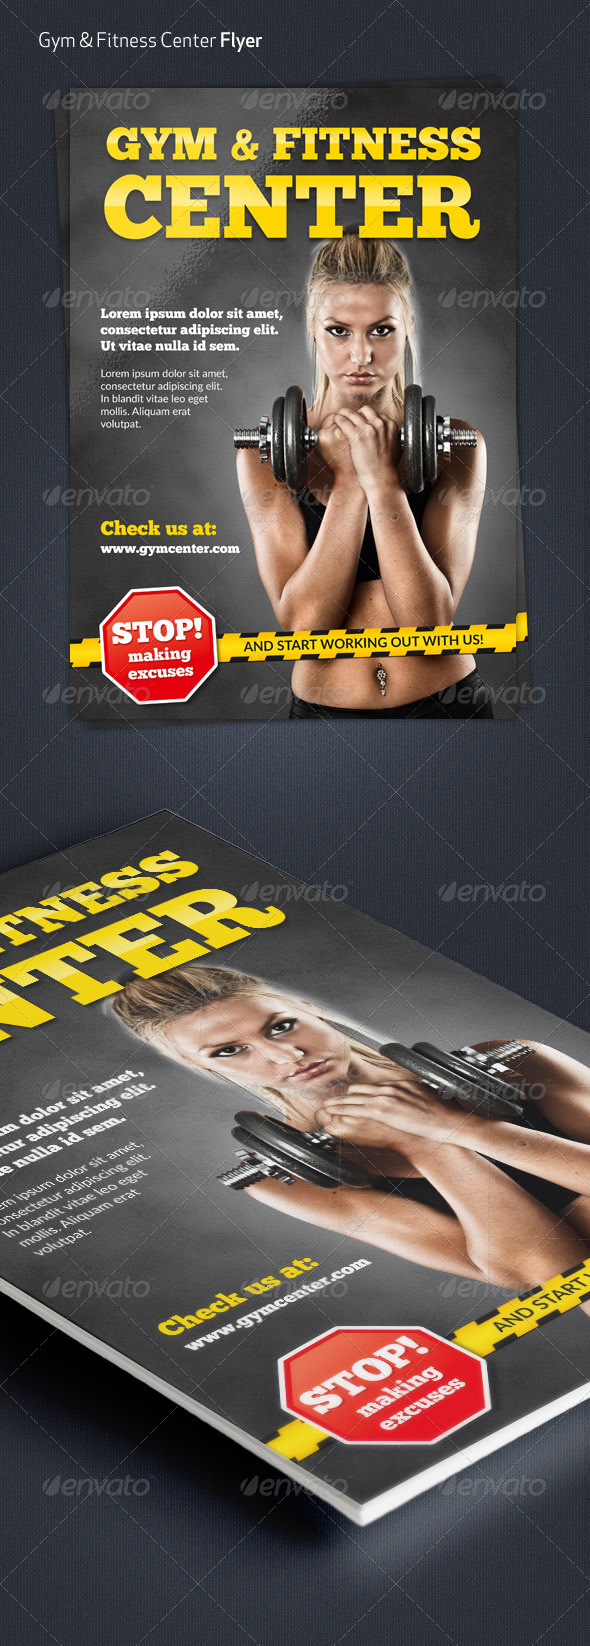 GraphicRiver Gym & Fitness Center A4 Flyer 7289181